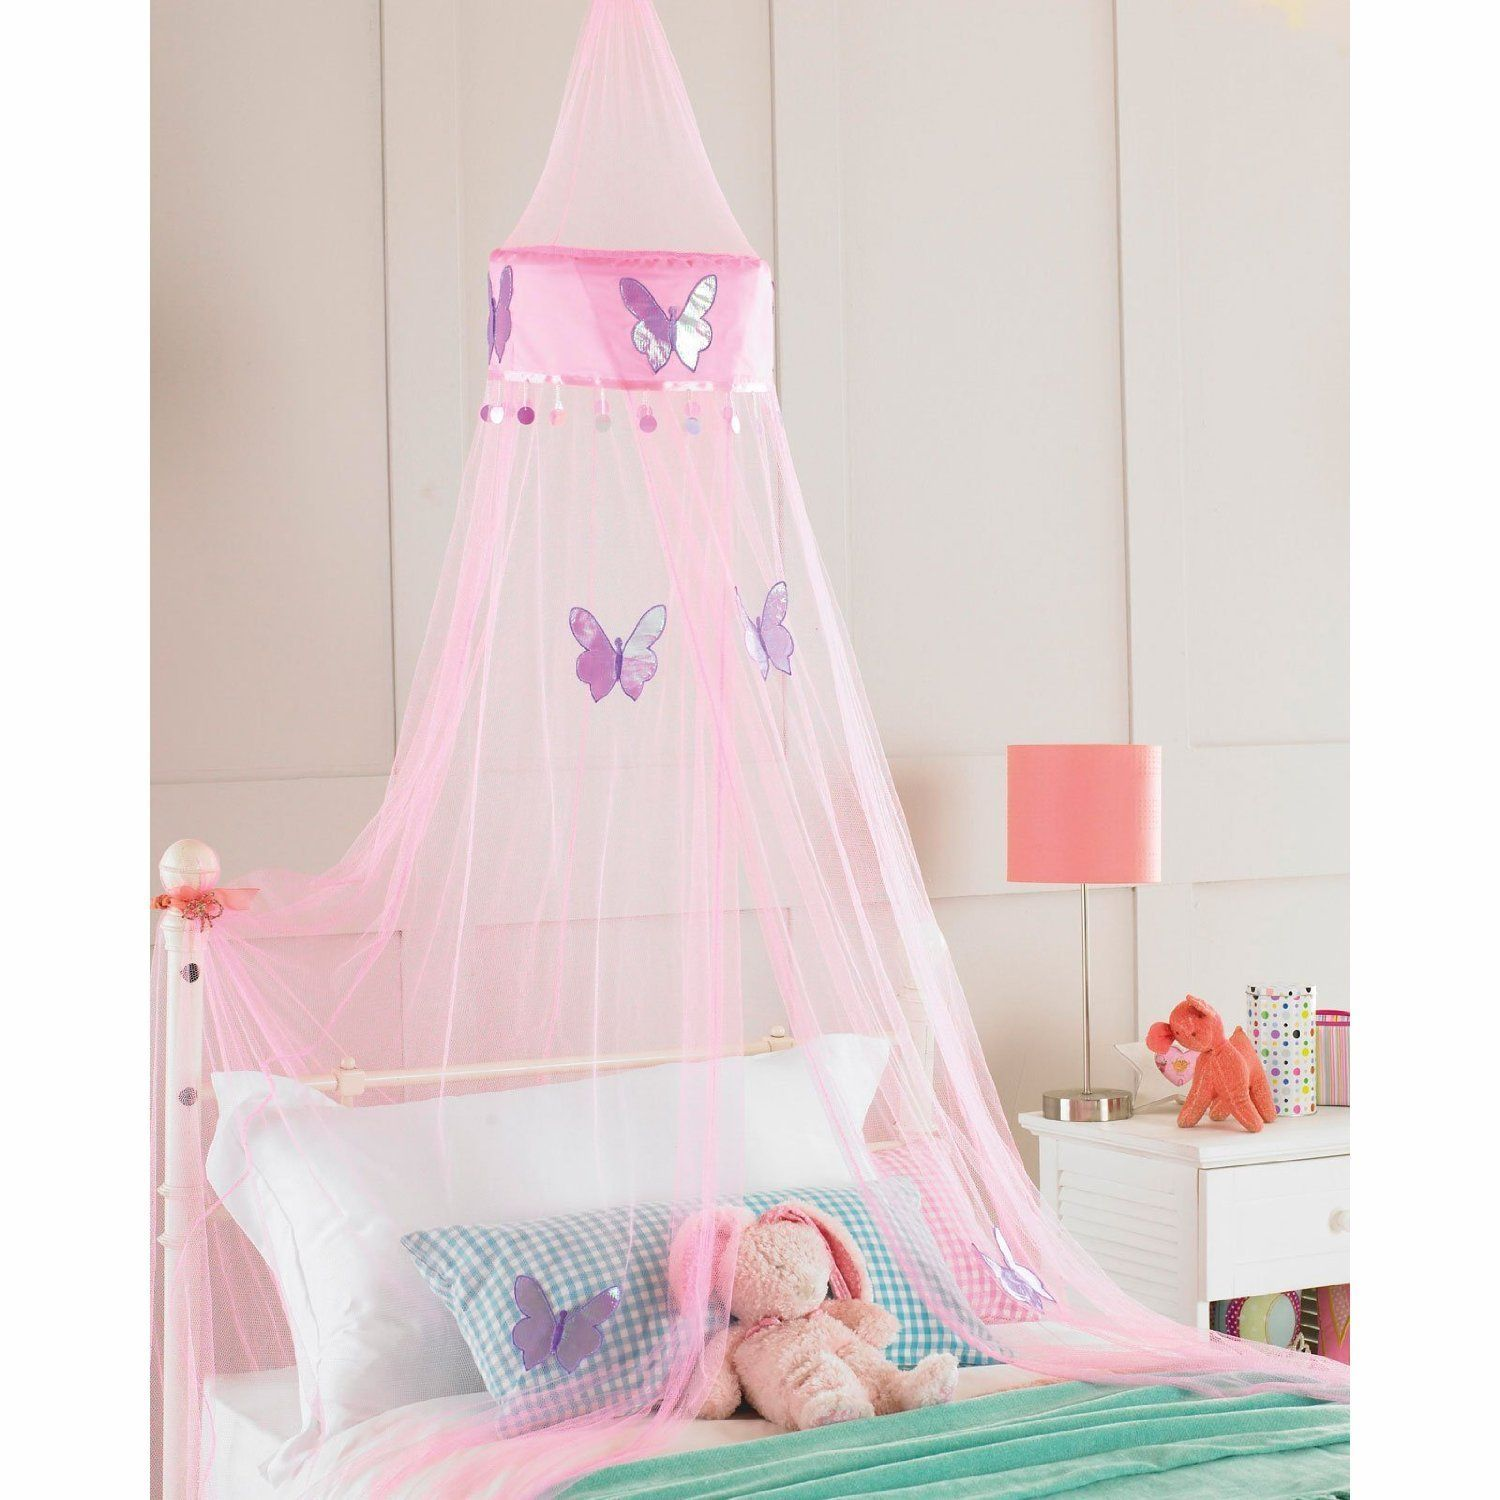 12.49 Childrens Girls Bed Canopy Mosquito Fly Netting Net